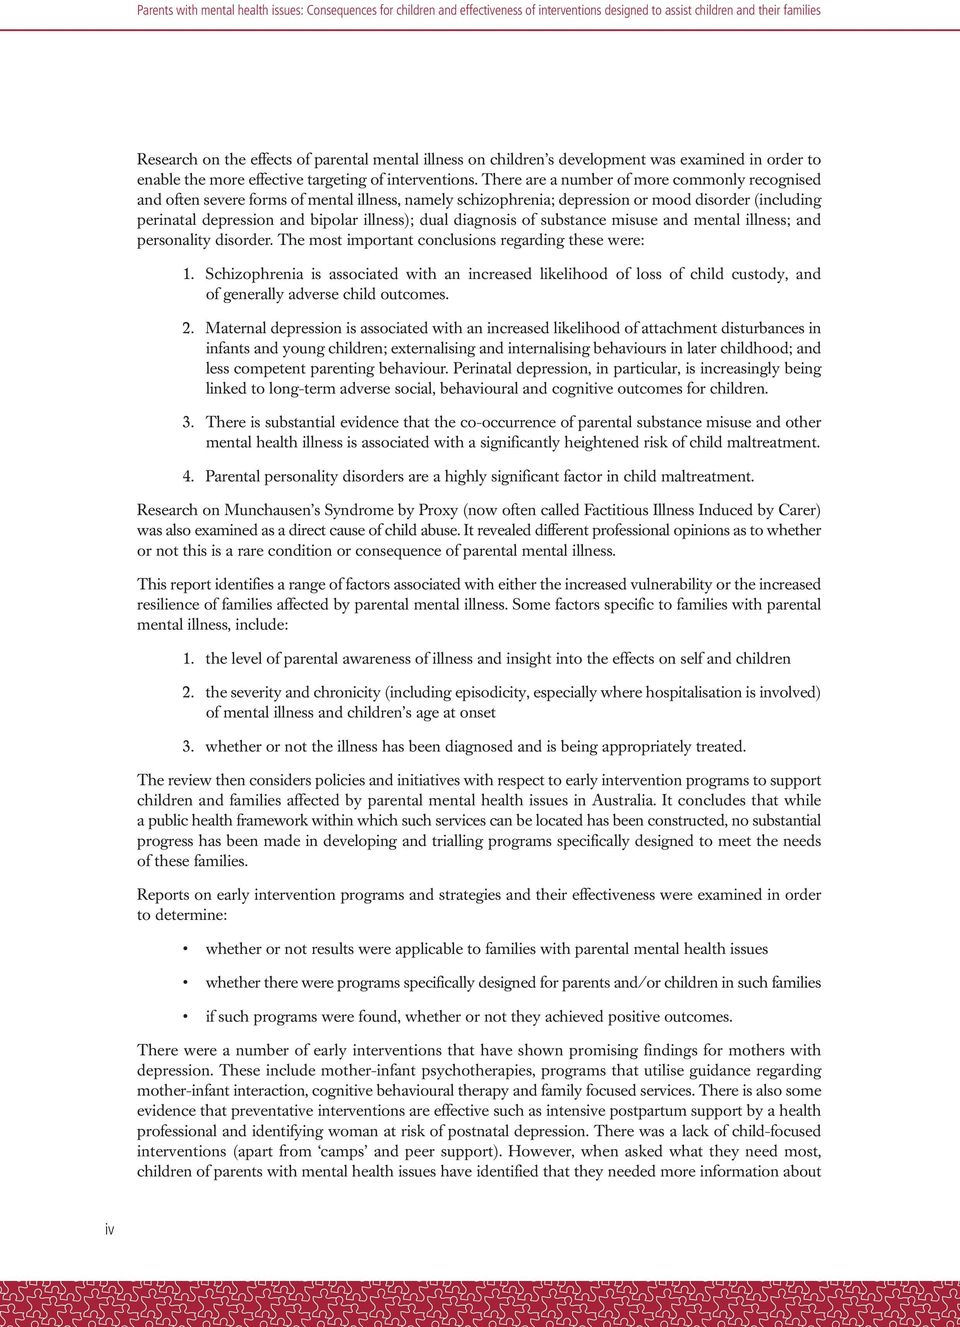 essay on changes in school property